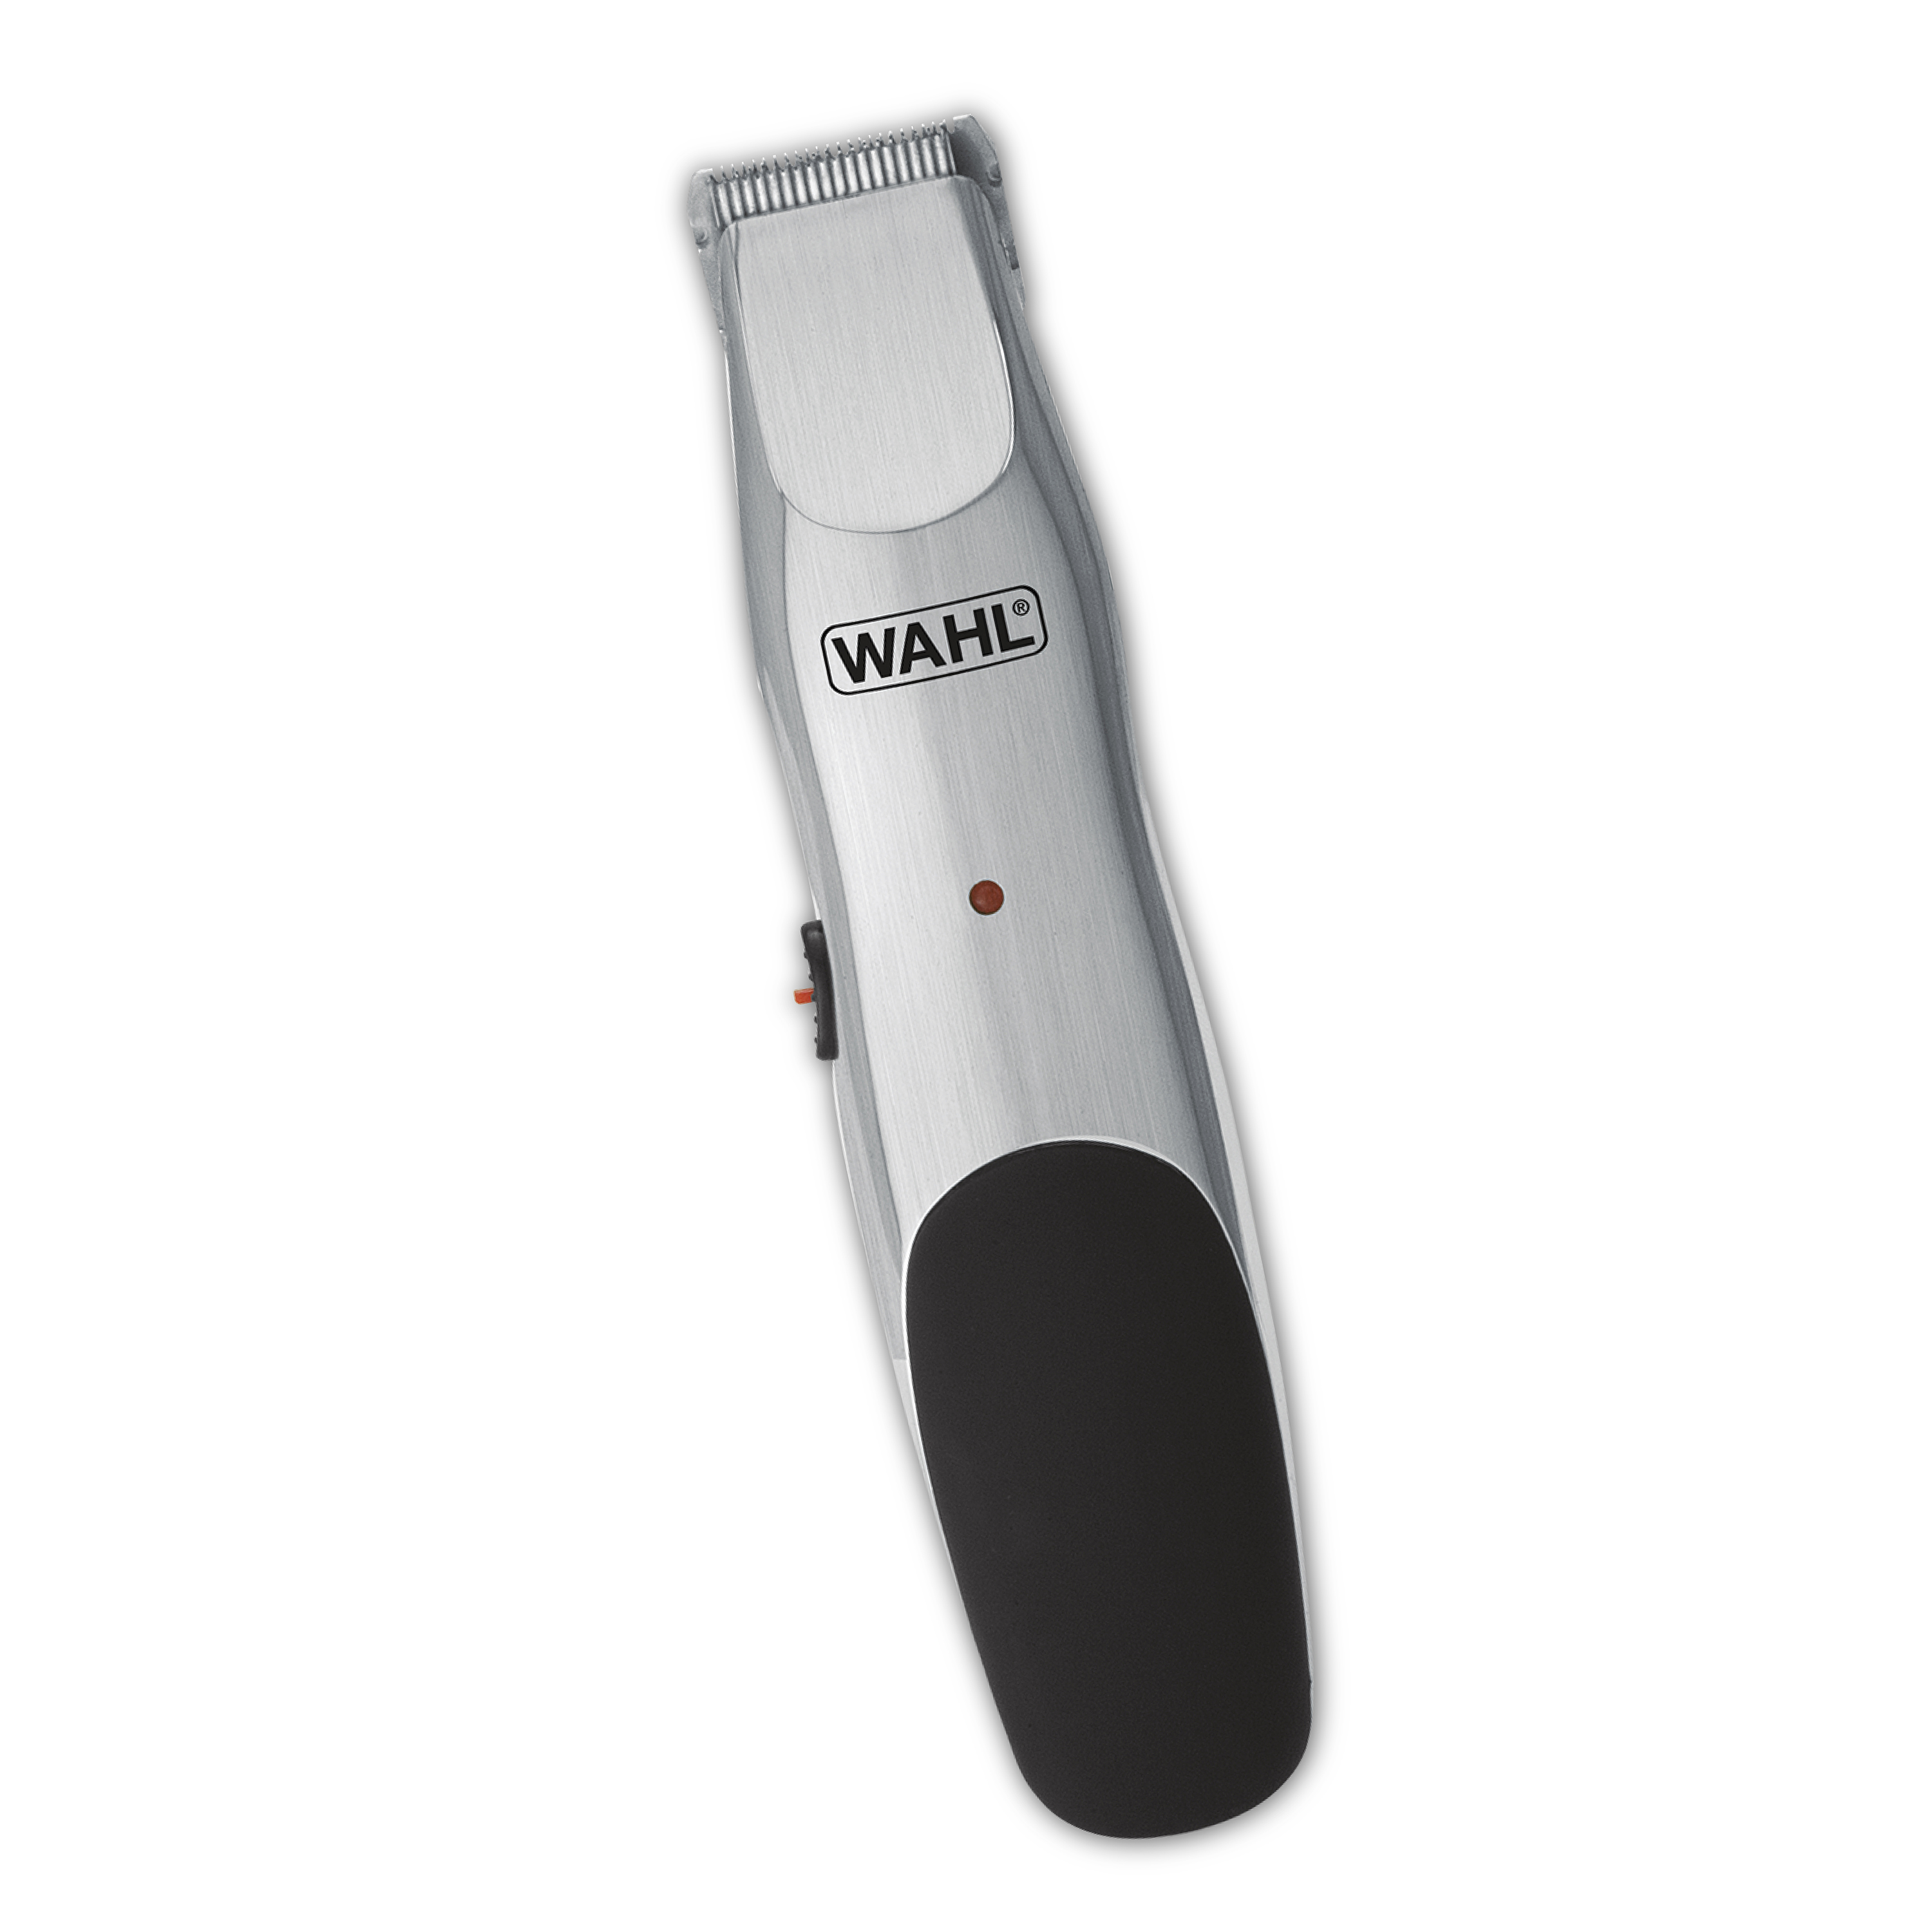 Wahl Beard Cord/Cordless Rechargeable Trimmer, Model 9918-1601